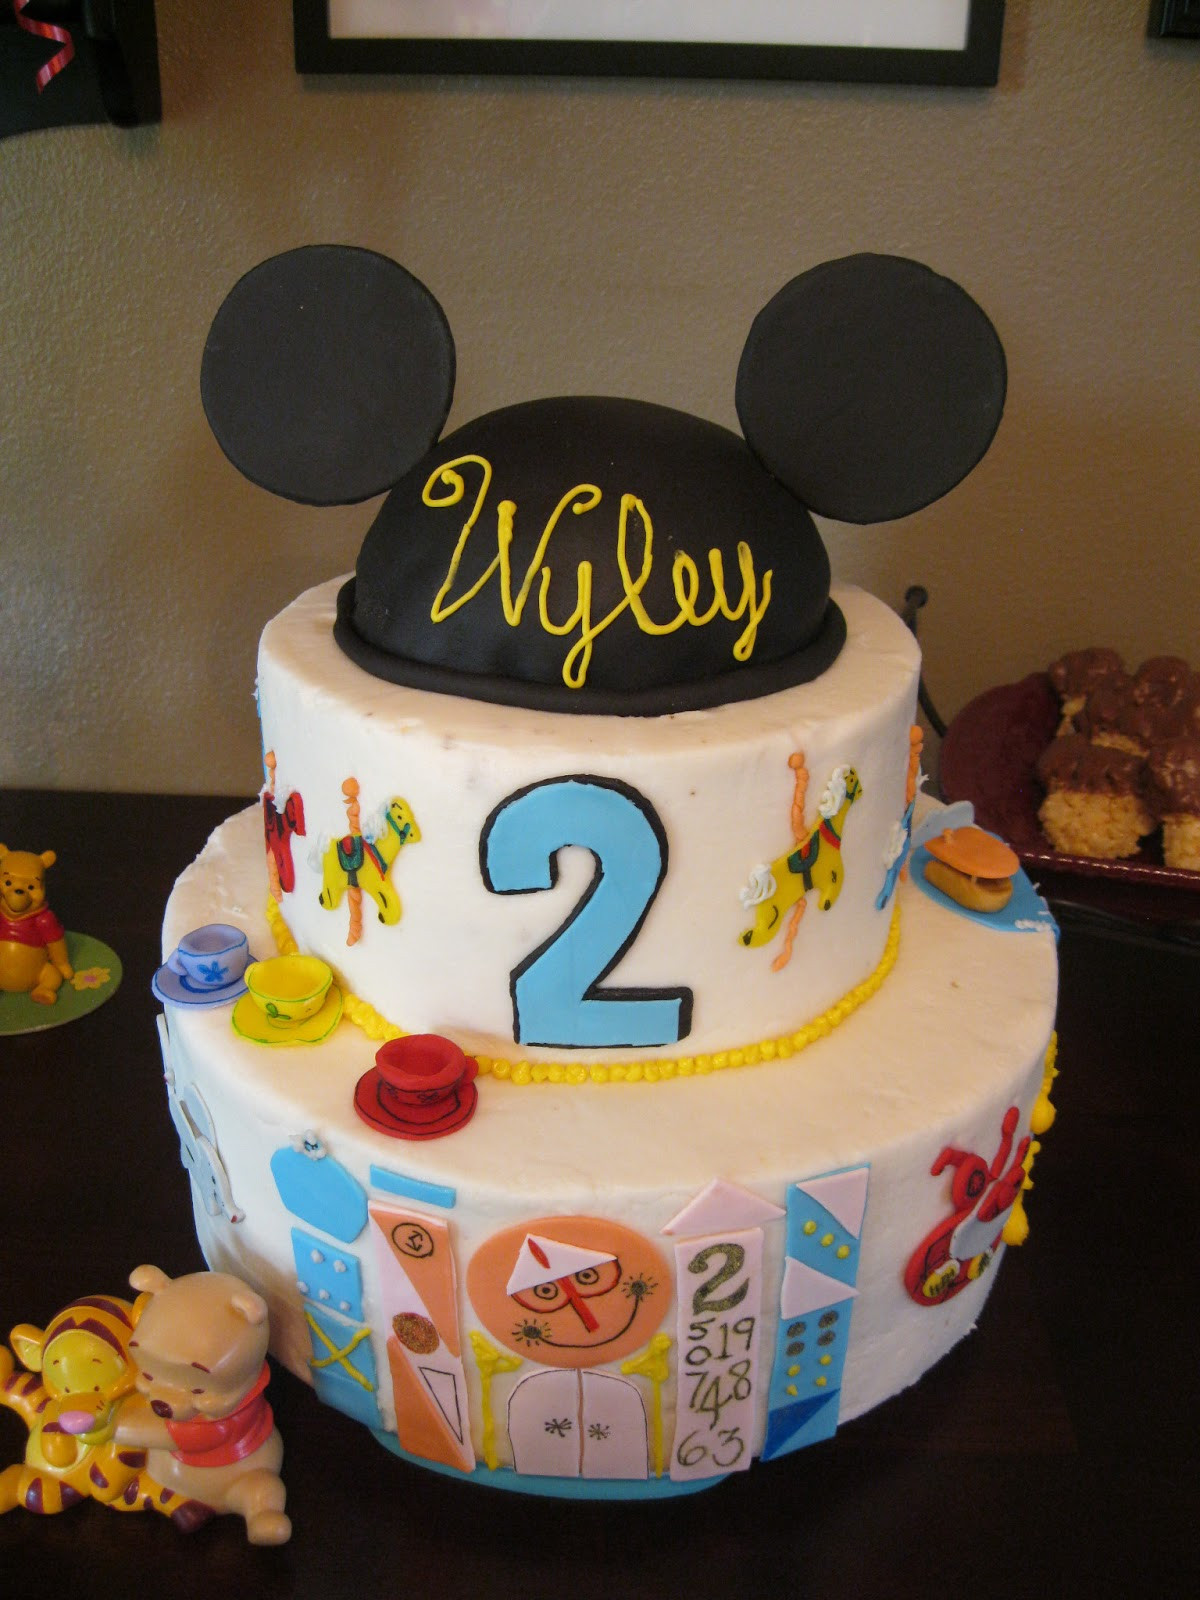 Best ideas about Disneyland Birthday Cake . Save or Pin Cakes Crafts and Kylie Disneyland Themed Birthday Party Now.